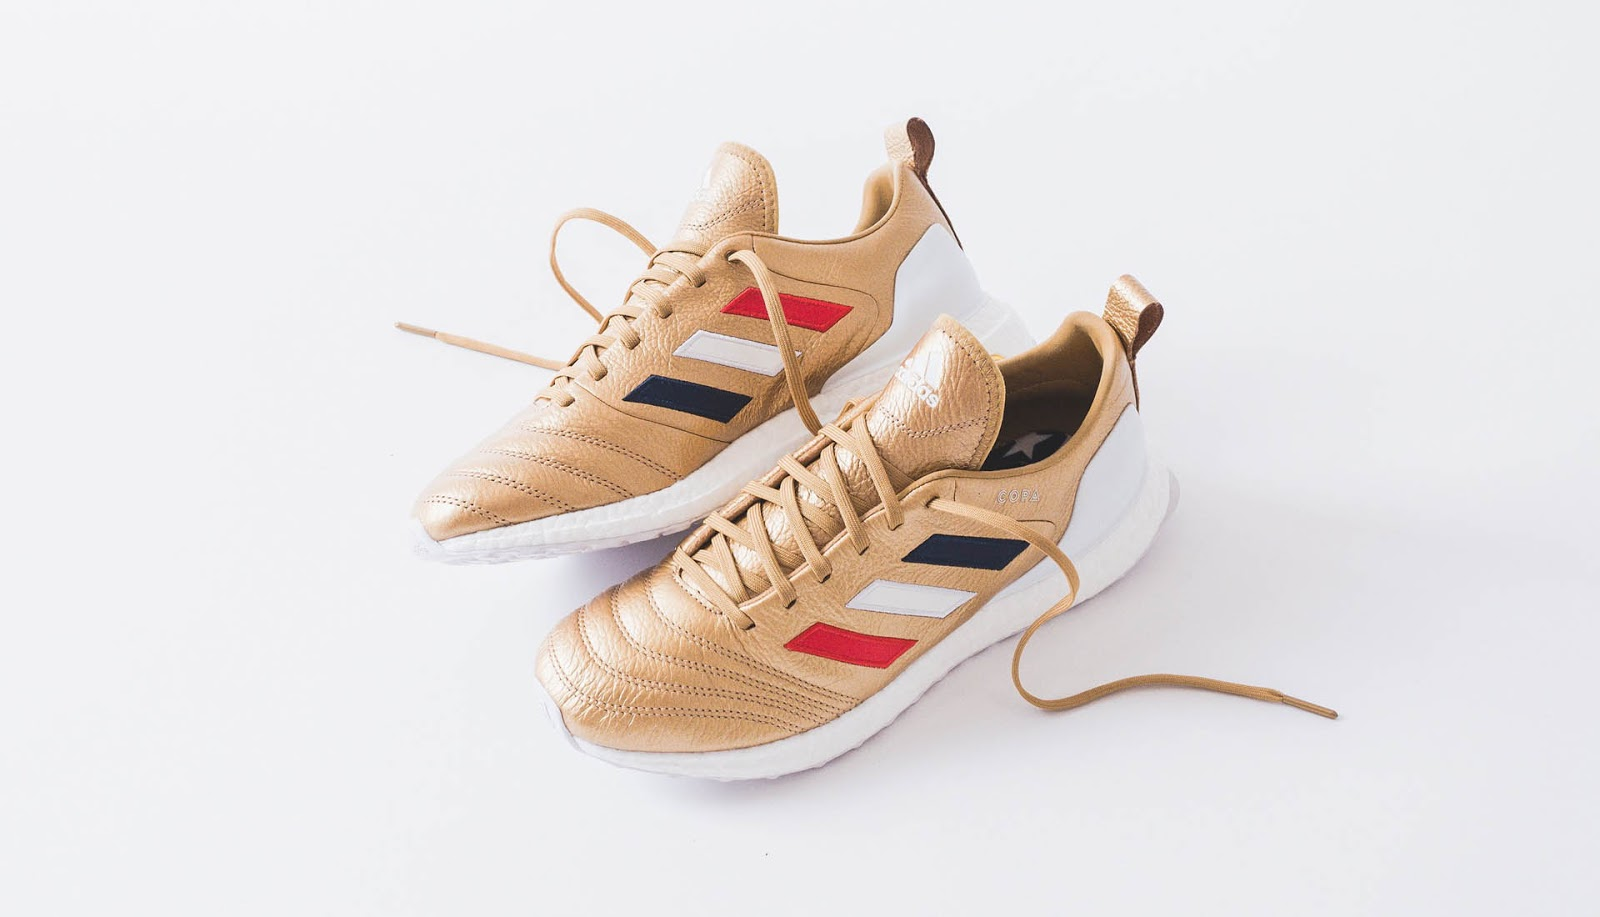 competitive price 3d53f d4968 Adidas x Kith Ace 16+ & Copa Mundial UltraBOOST Revealed ...